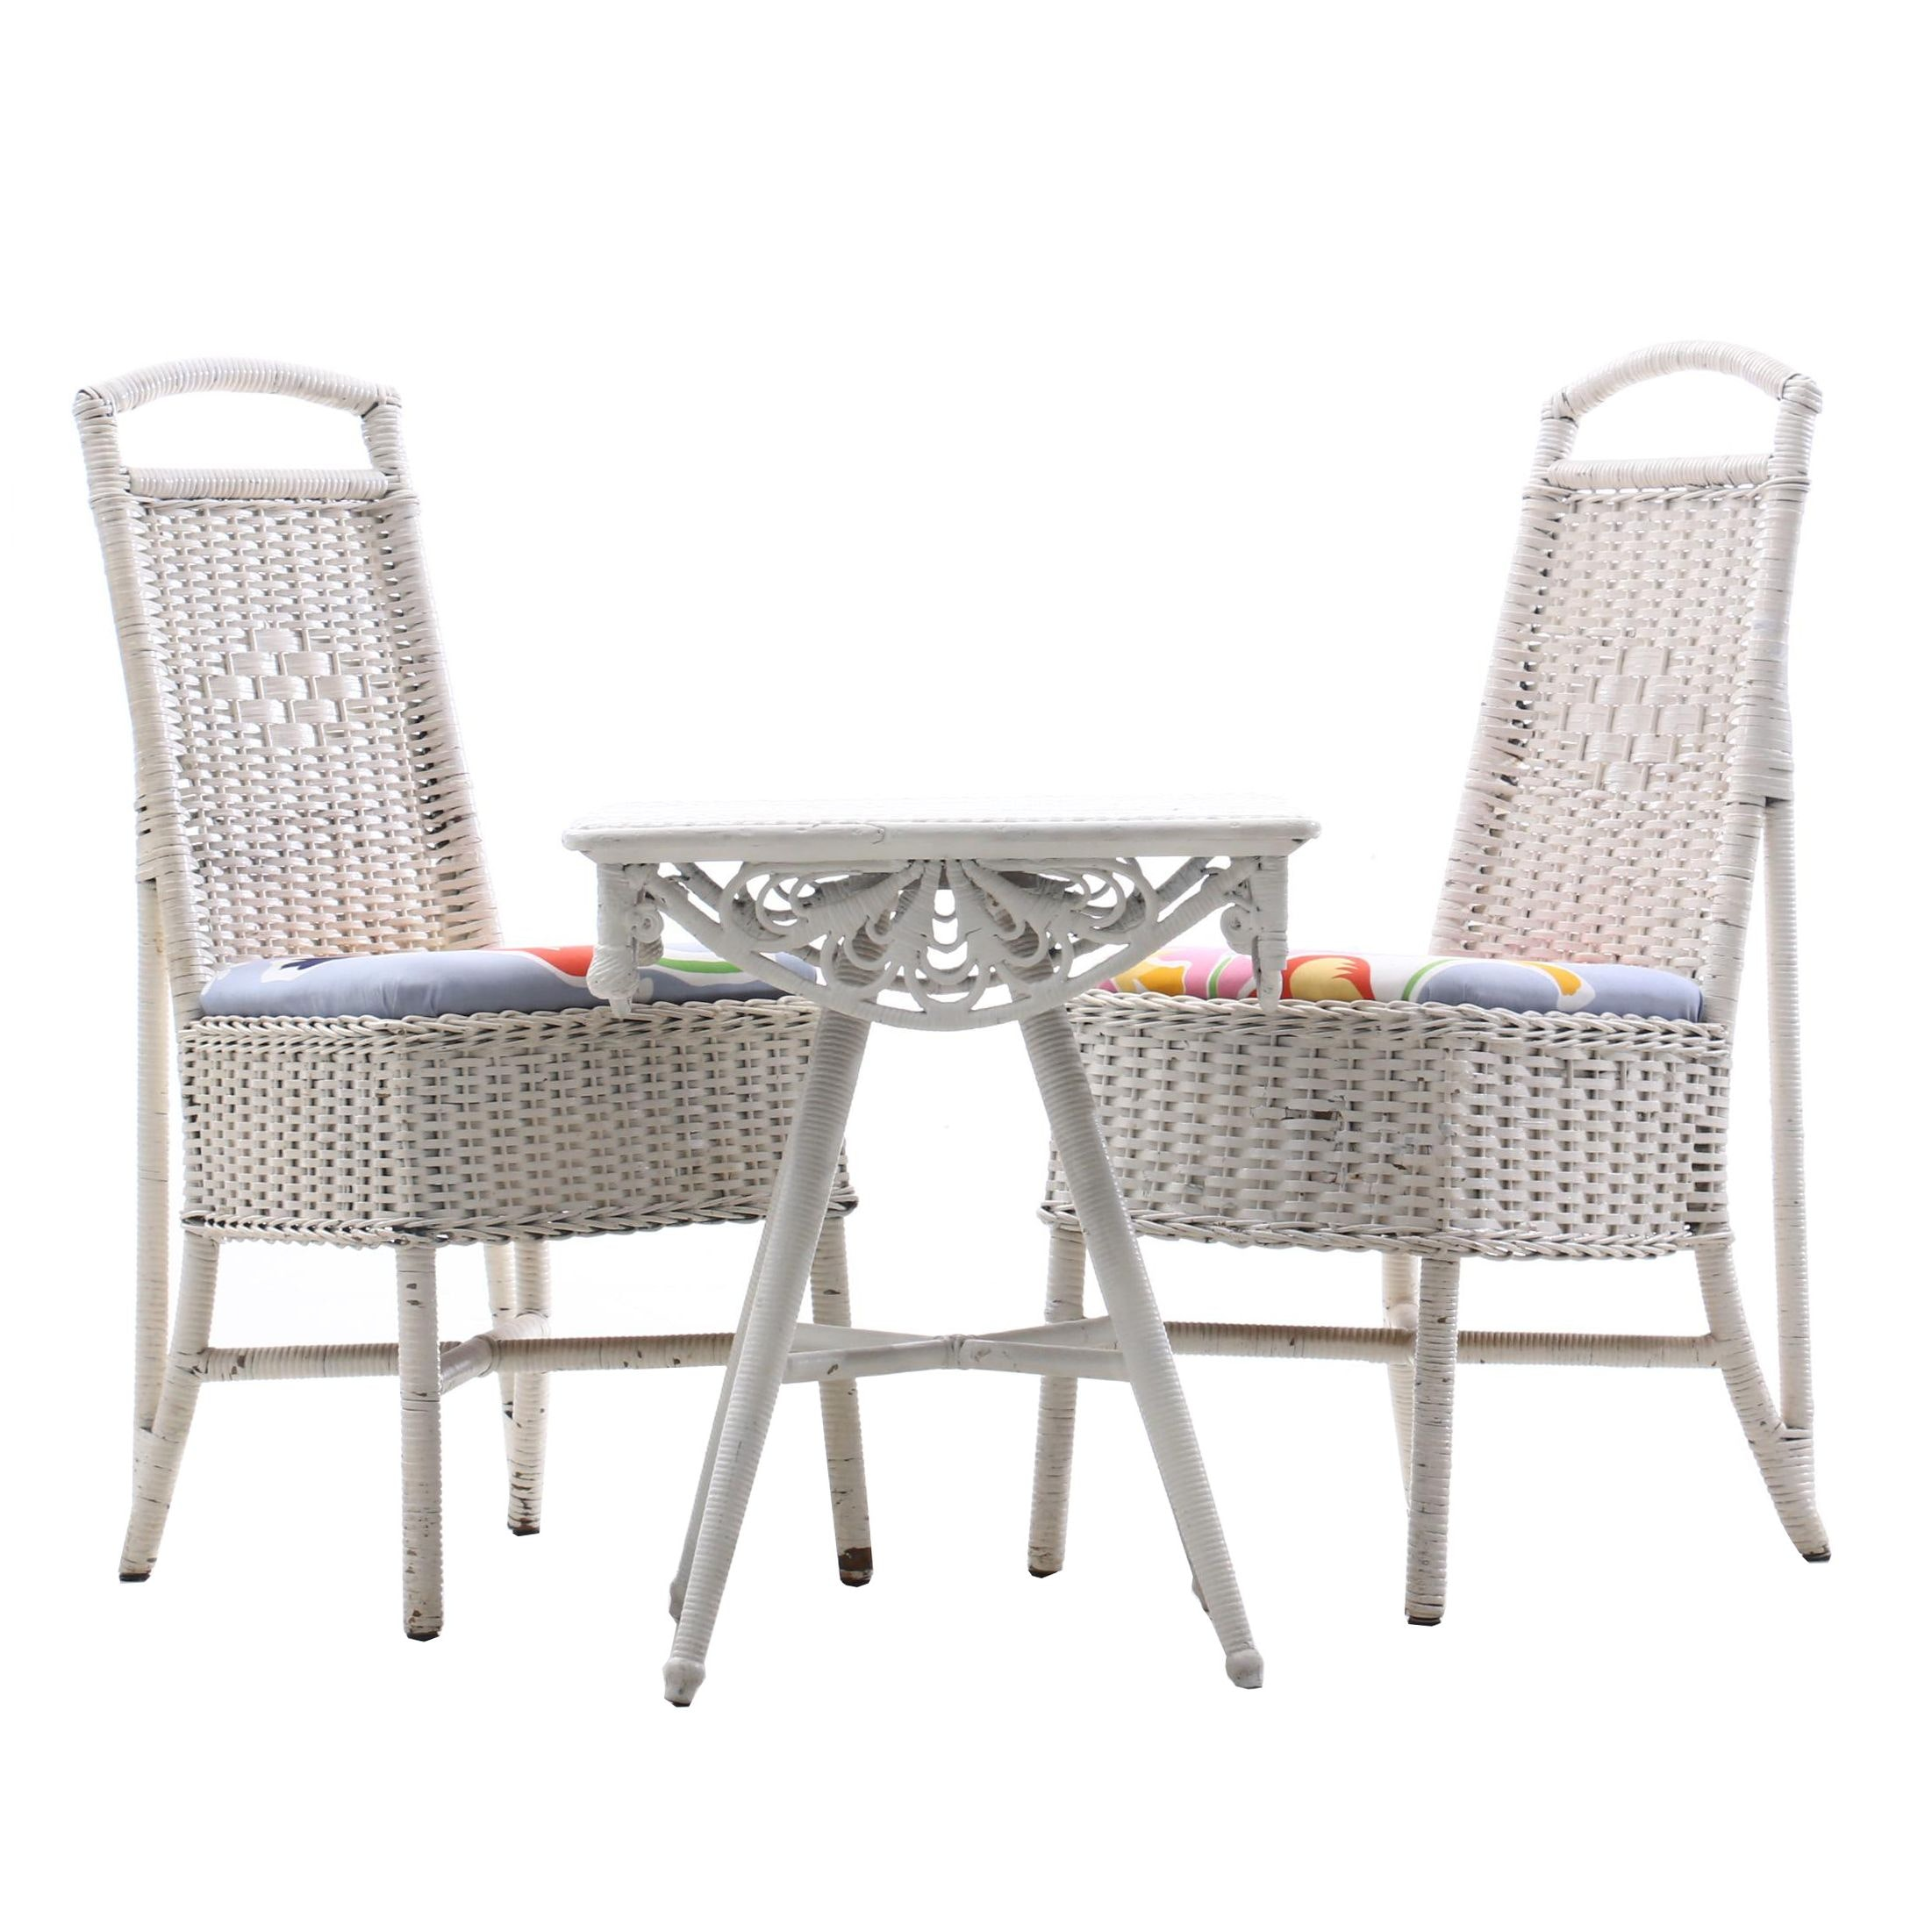 Wicker Chairs and Accent Table